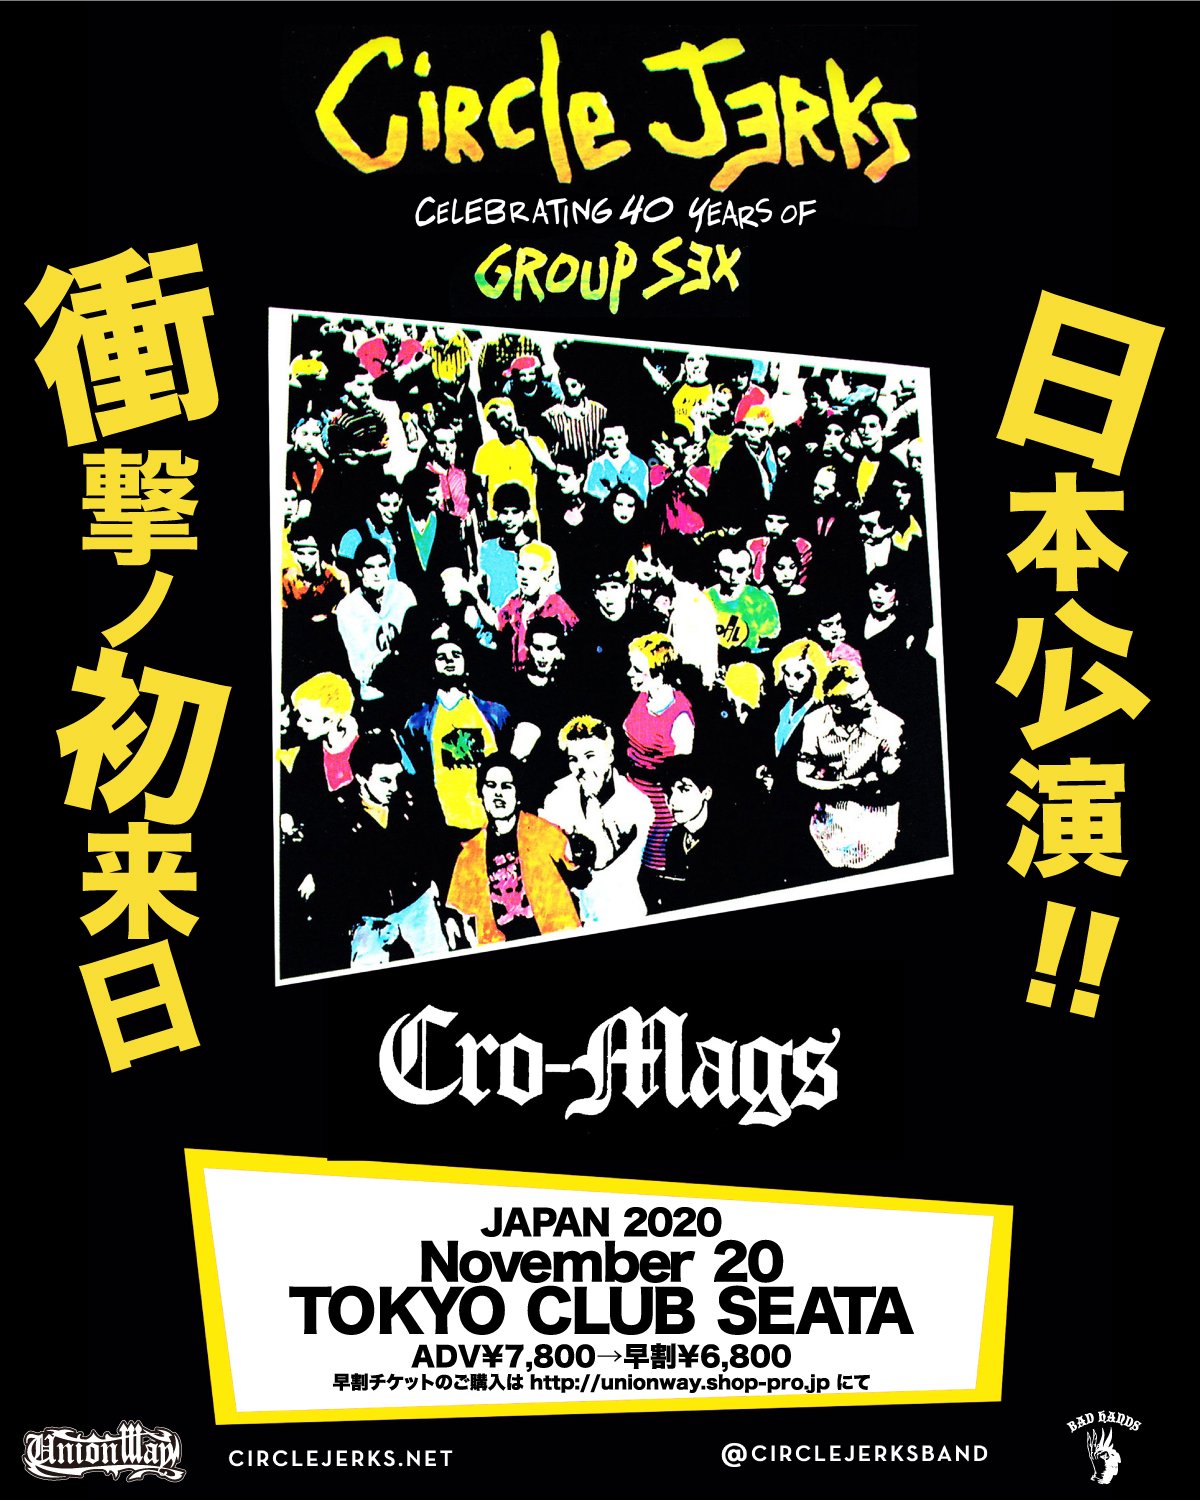 UNIONWAY presents Circle Jerks CELEBRATING 40 YEARS OF GROUP SEX JAPAN TOUR 2020の写真